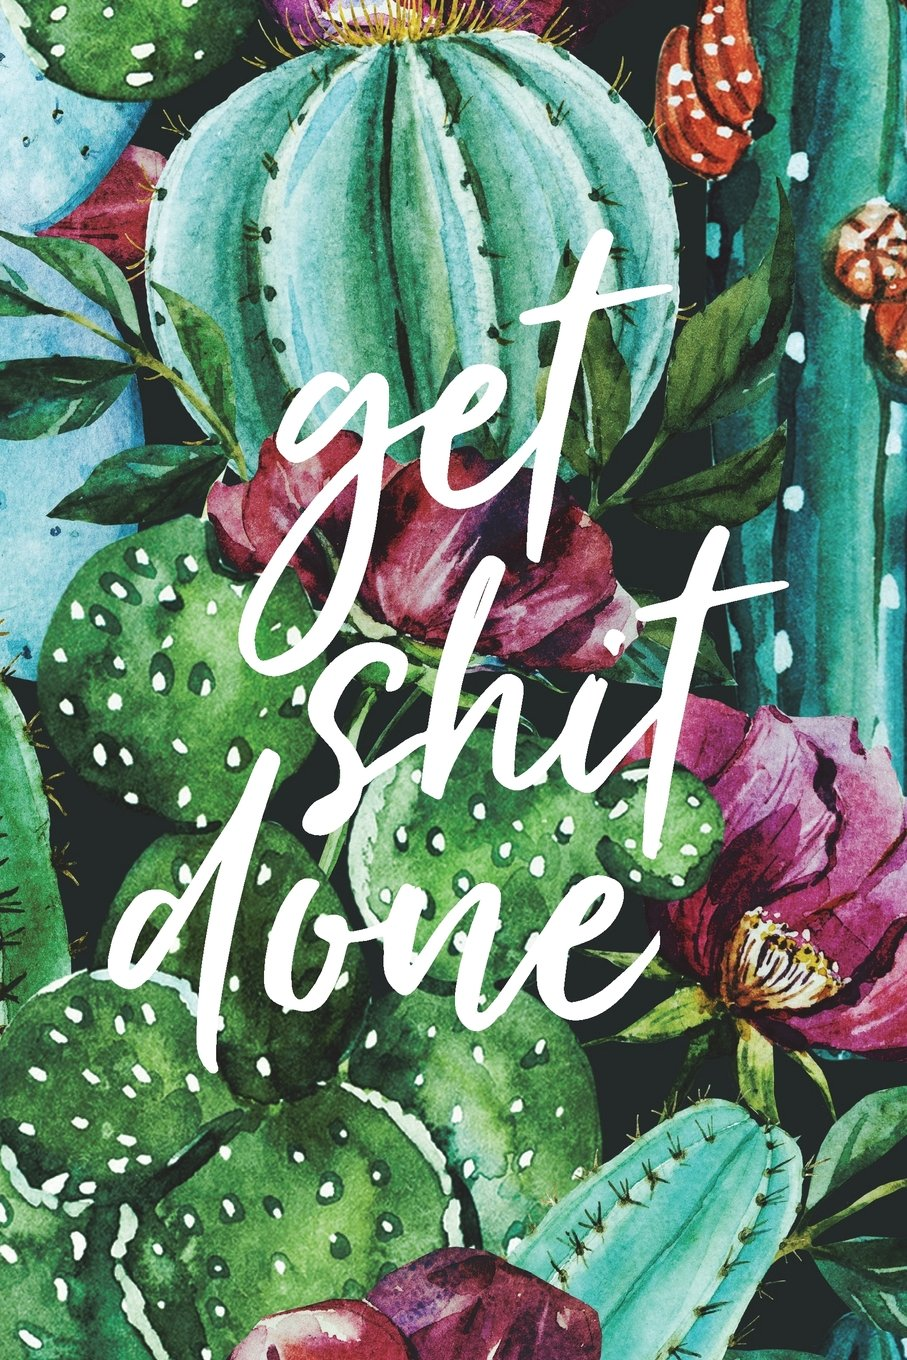 get shit done 18 month weekly monthly planner 2018 2019 cactus july 2018 december 2019 6 x 9 2018 2019 18 month daily weekly monthly planner organizer agenda and calendar